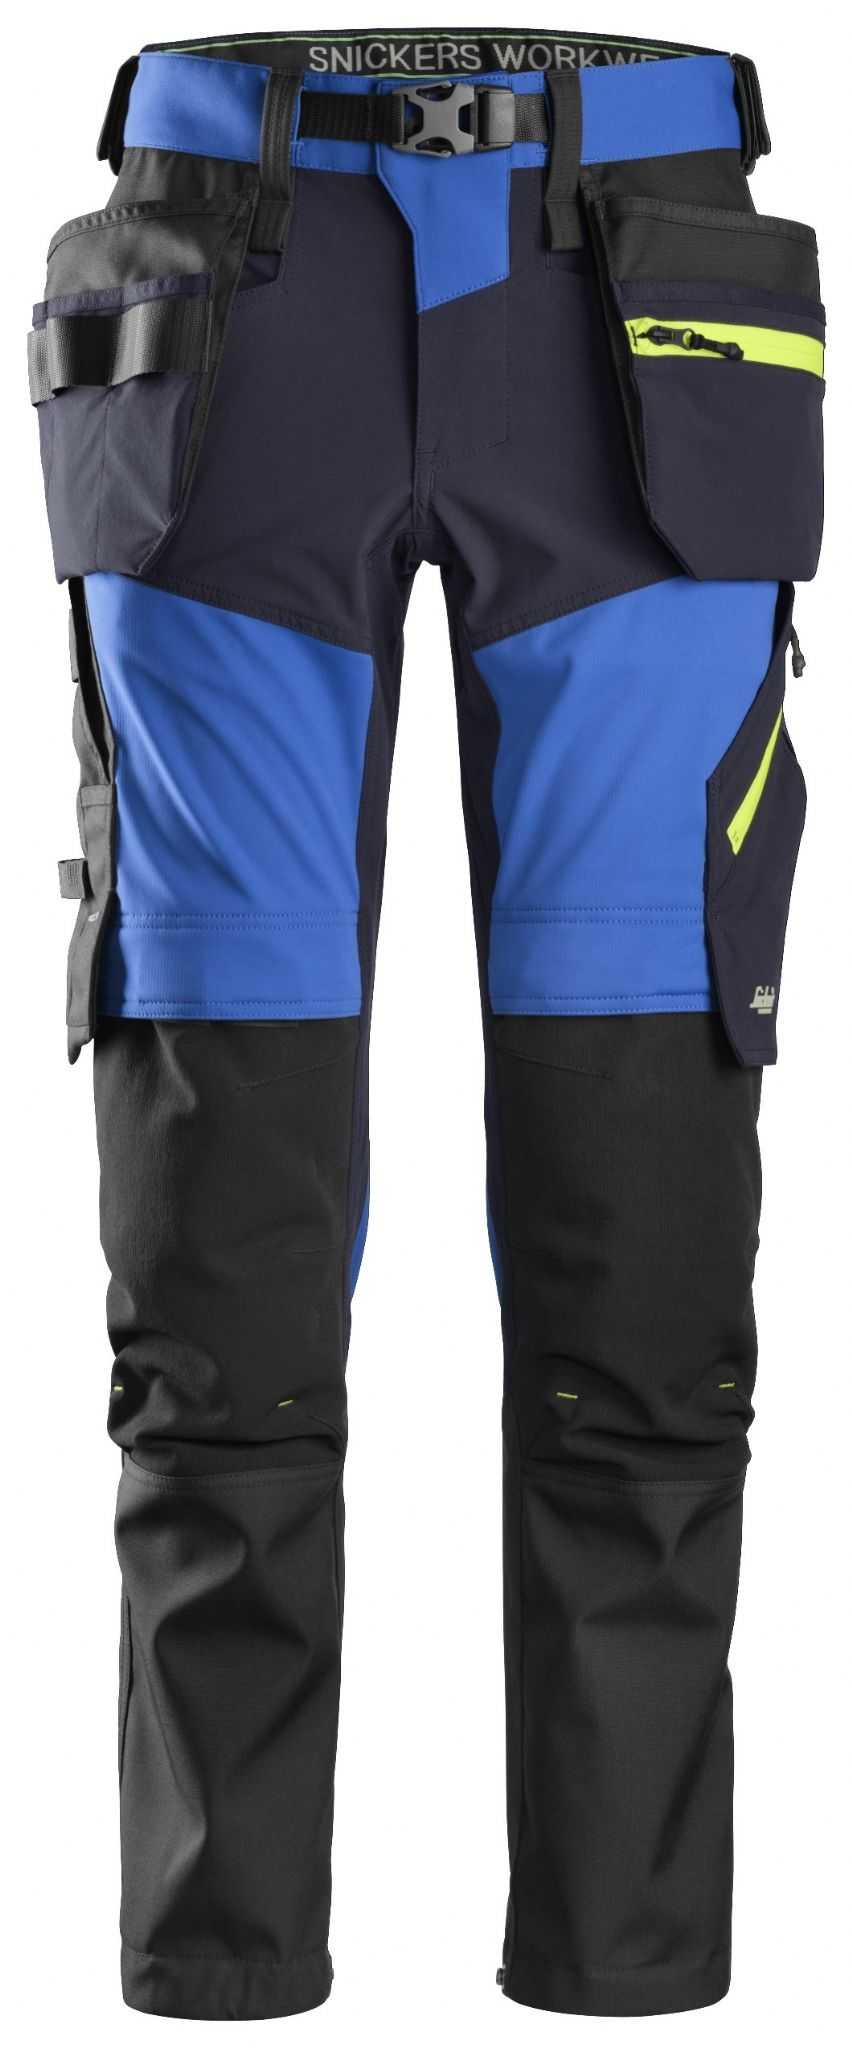 4148d8e1 Snickers 6940 FlexiWork Softshell Stretch Work Trousers Holster ...